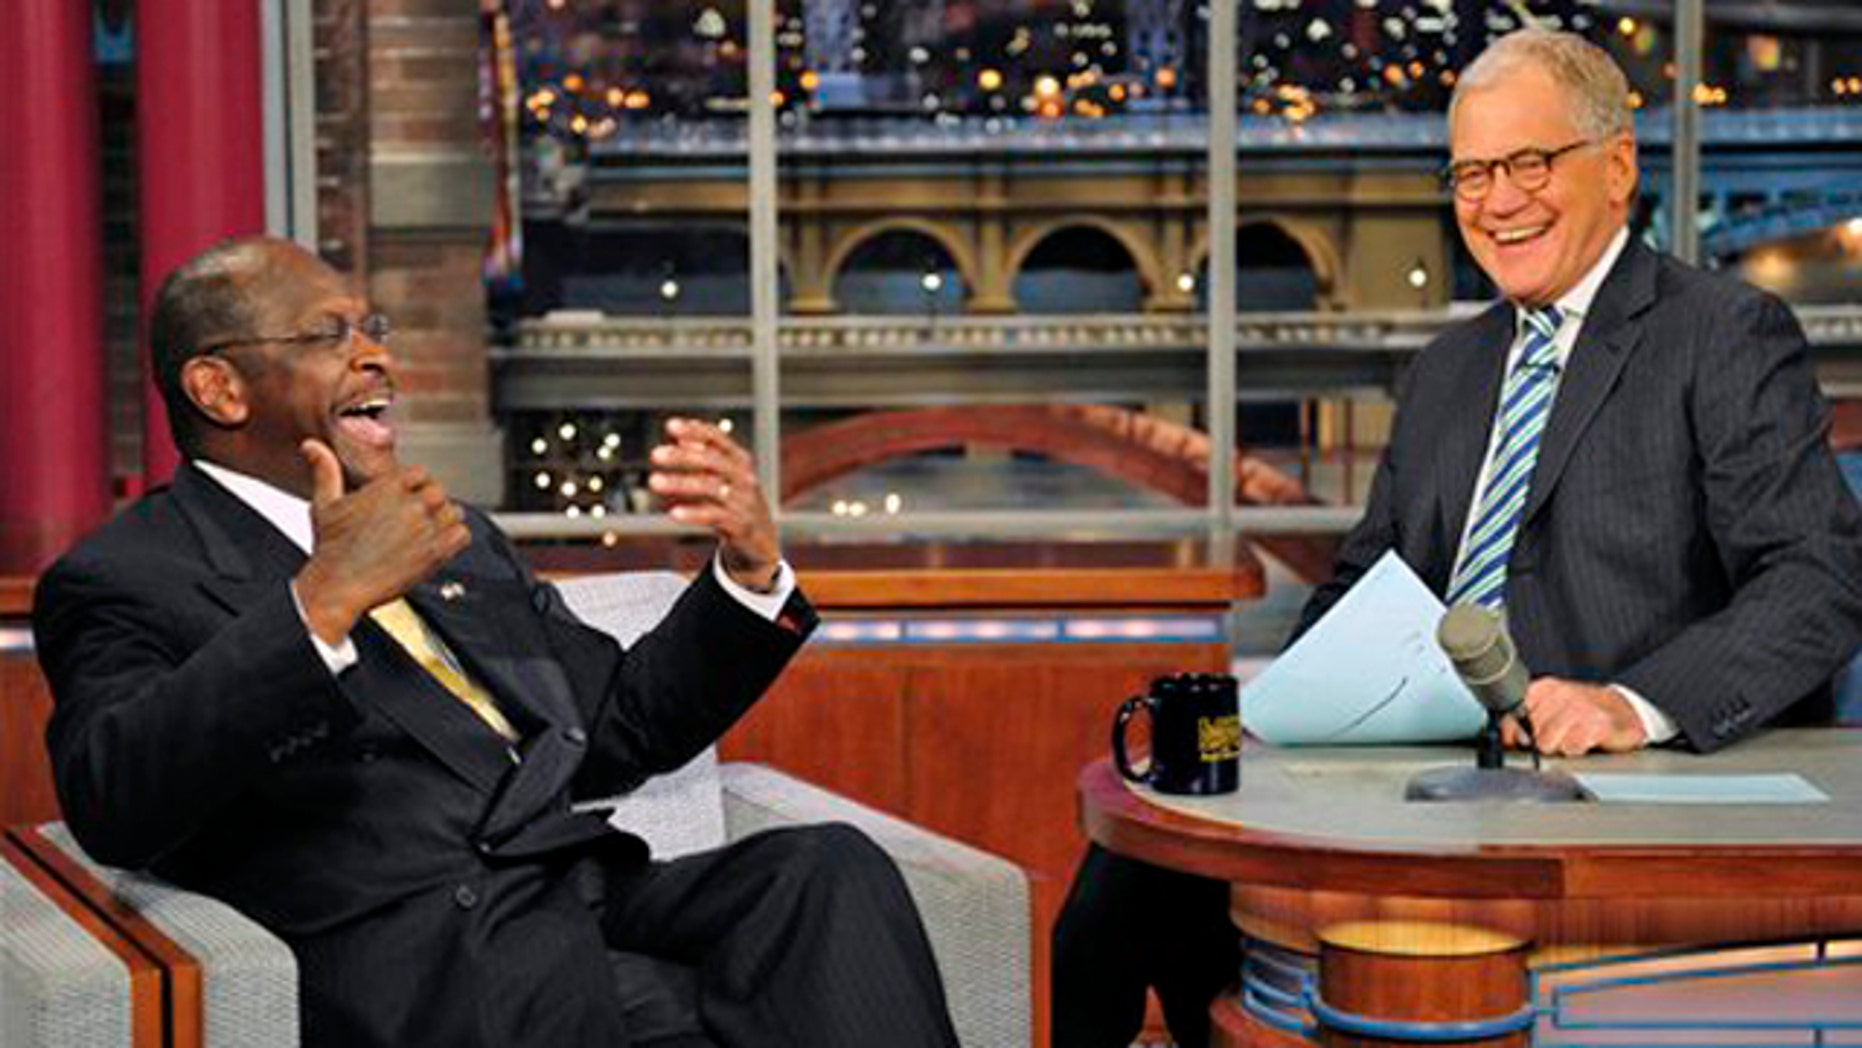 Novemeber 18, 2011:Republican presidential candidate Herman Cain joins host David Letterman on the set of the Late Show with David Letterman.